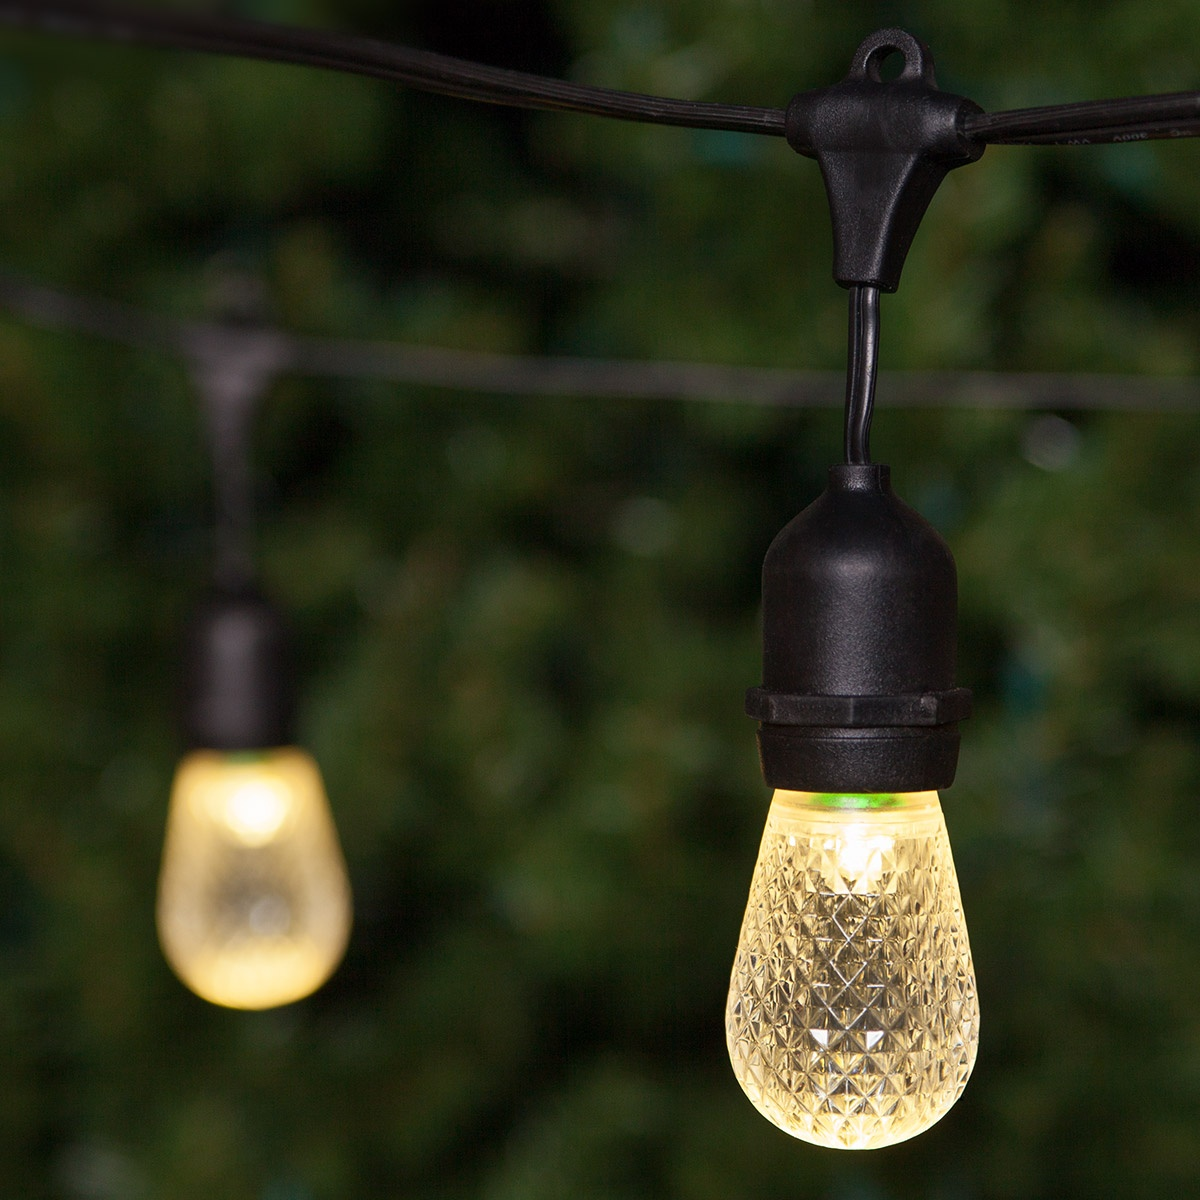 54u0027 Commercial Patio String With 24 Suspended S14 Warm White LED Outdoor Patio  Lights